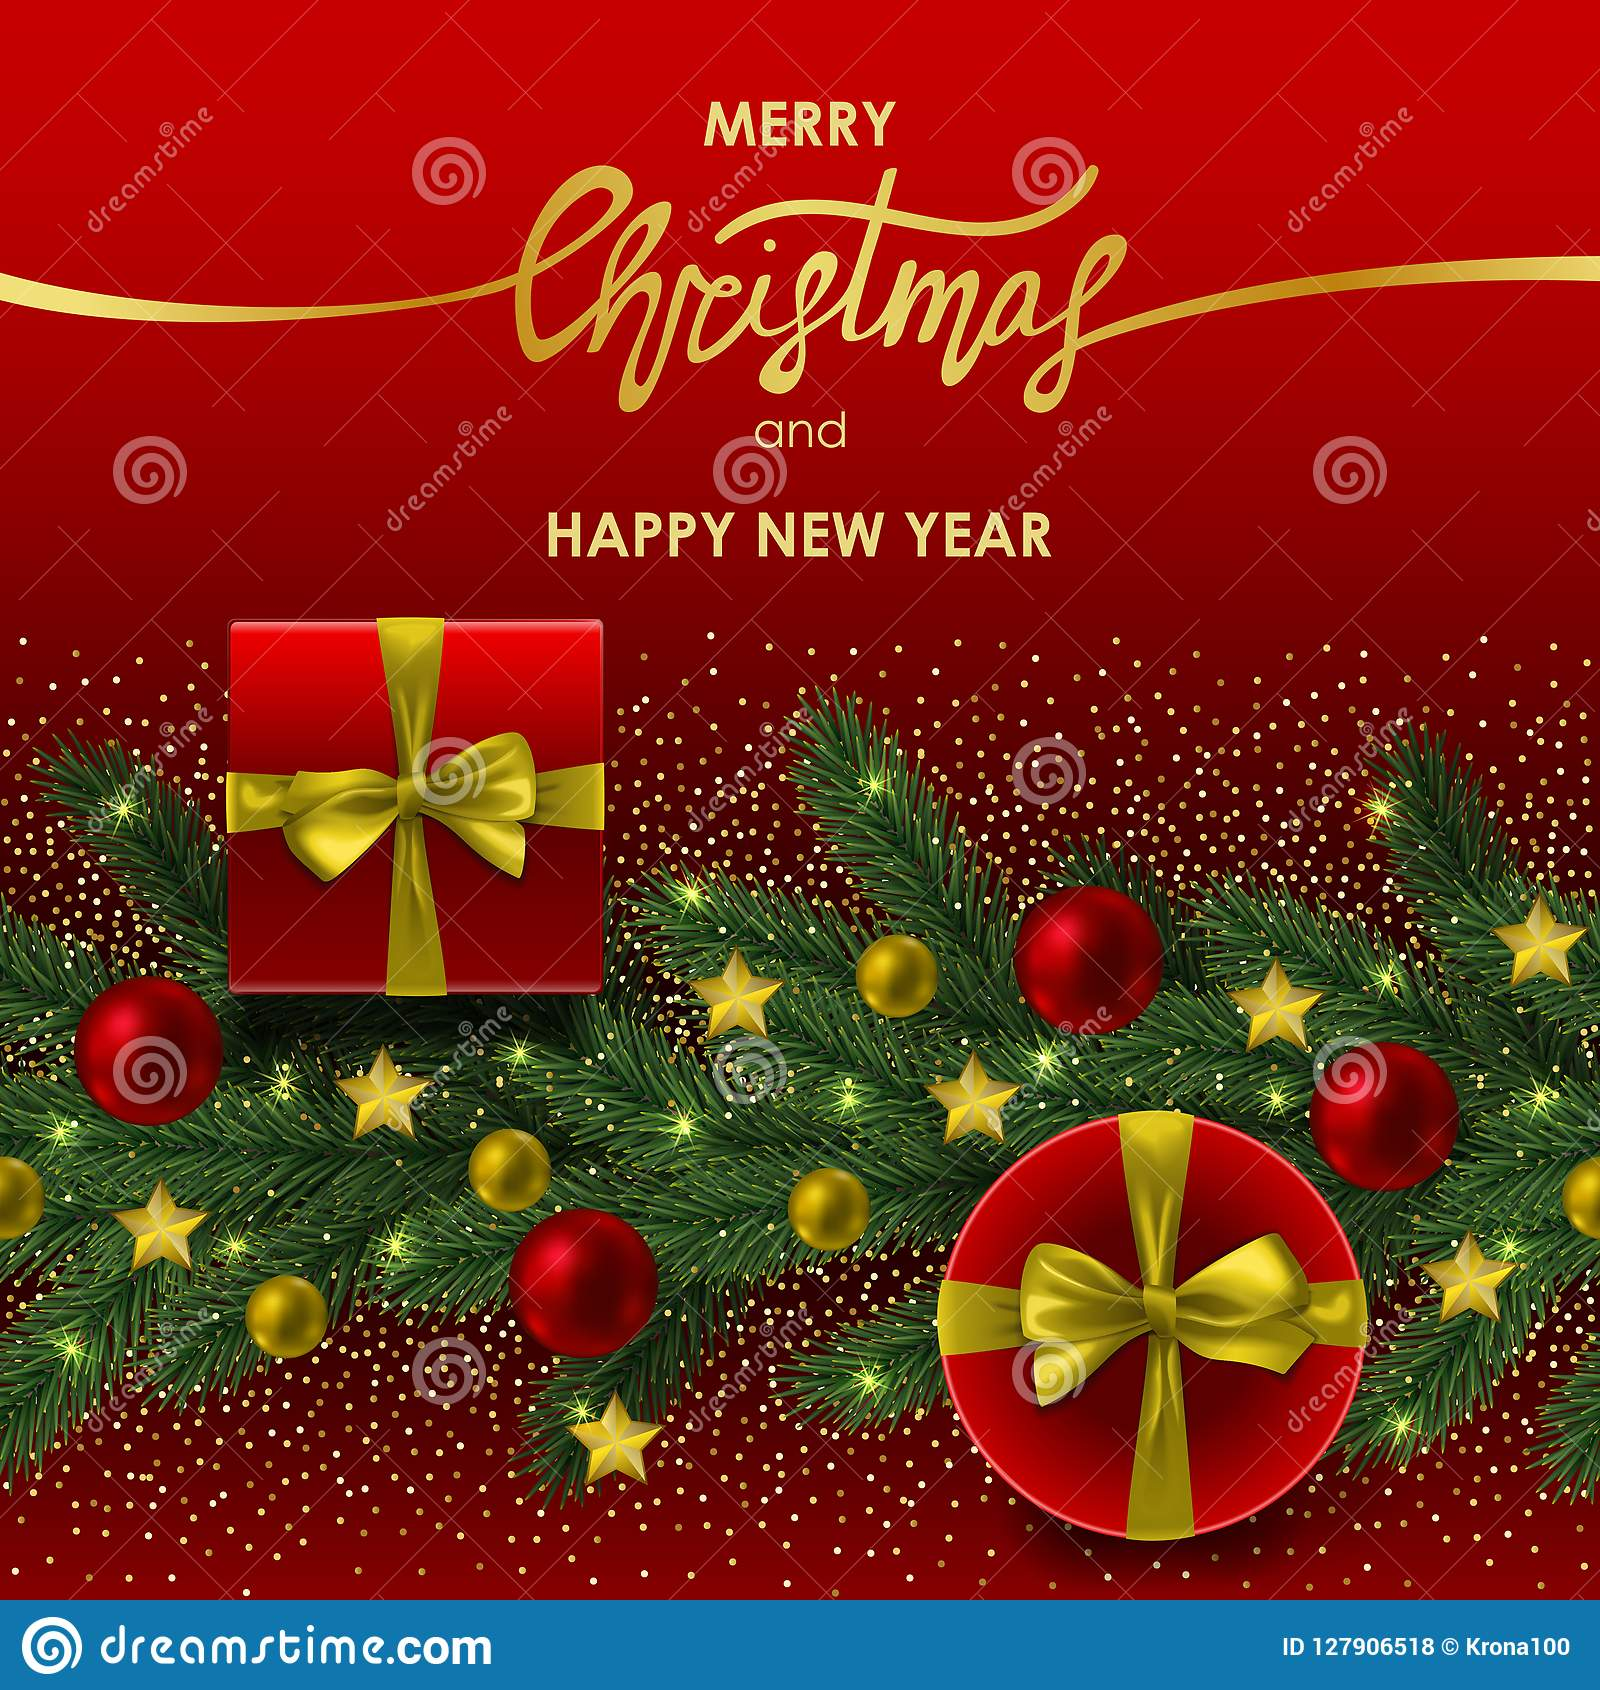 Christmas And New Year Invitation Card With Gold Lettering Stock